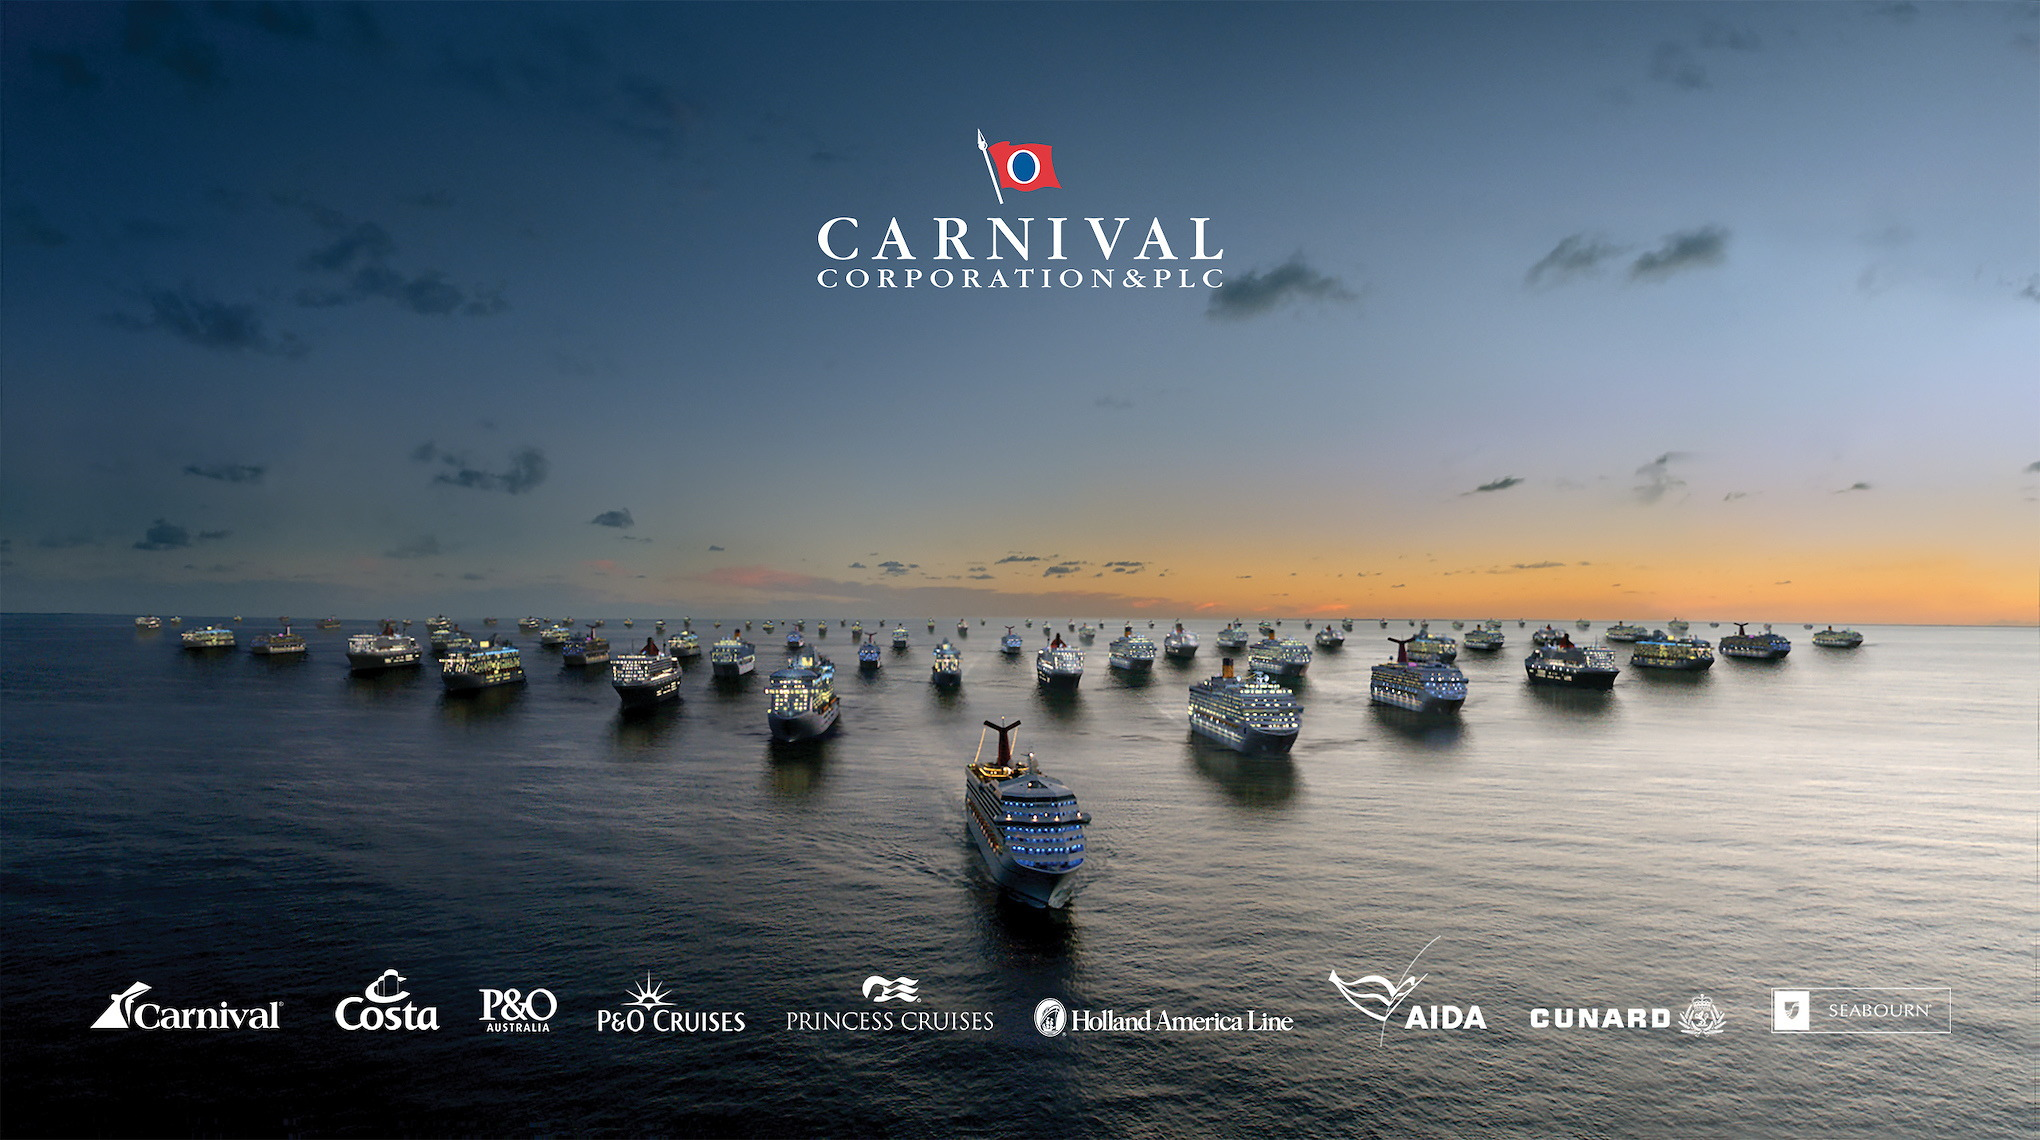 carnival pixels library